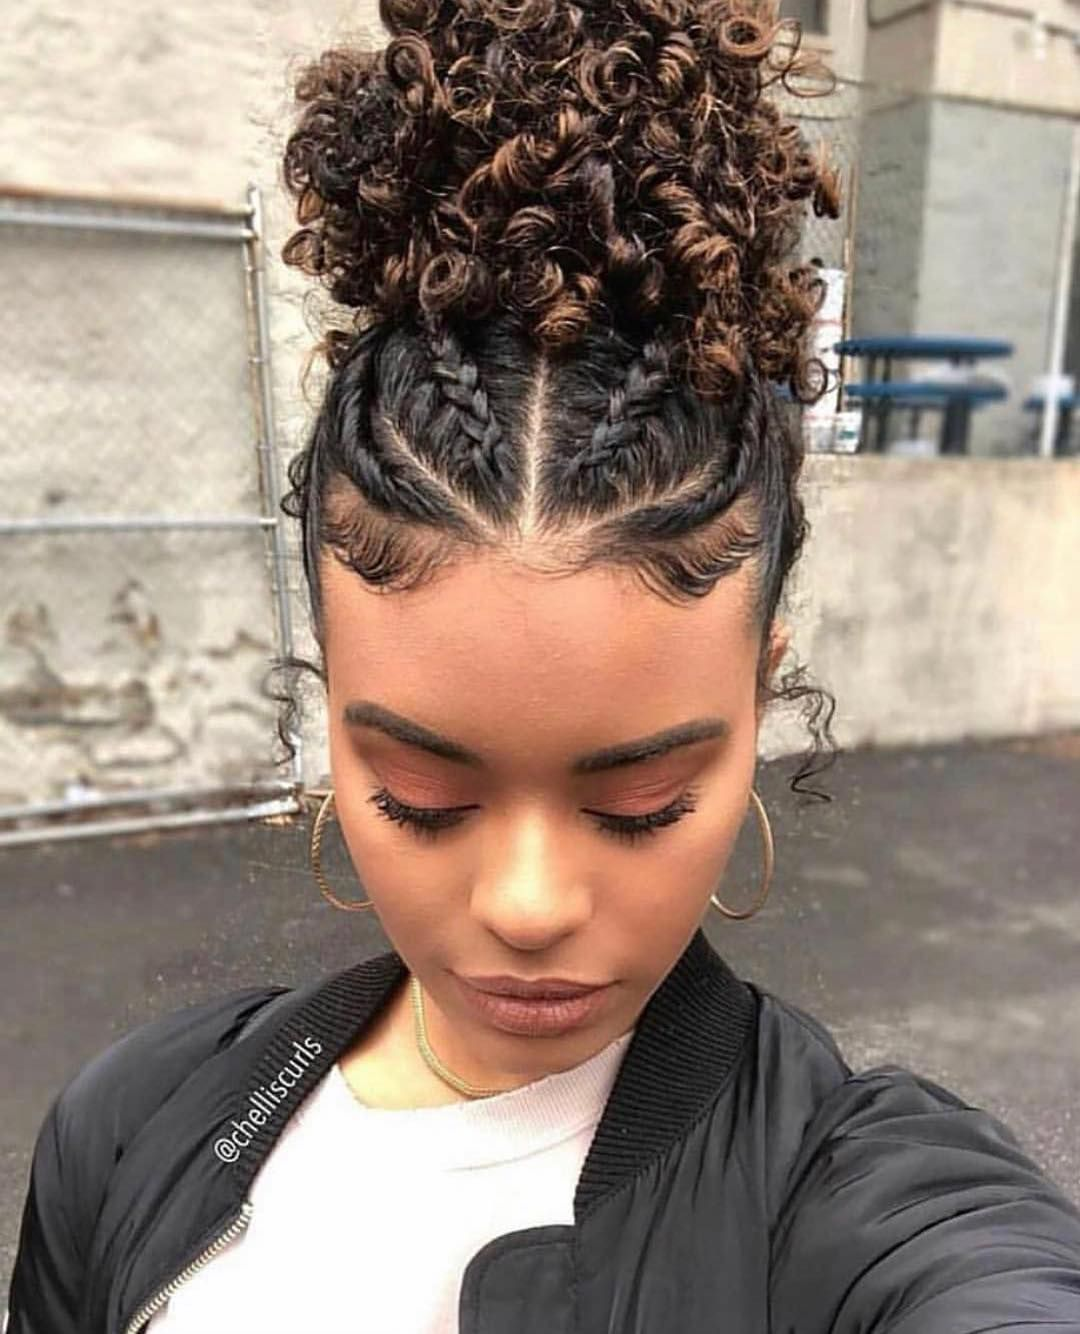 Mixed Is Beautiful On Instagram Would You Rock This Style Yes Or No Thenat Natural Hair Styles Hair Styles Curly Hair Styles Naturally